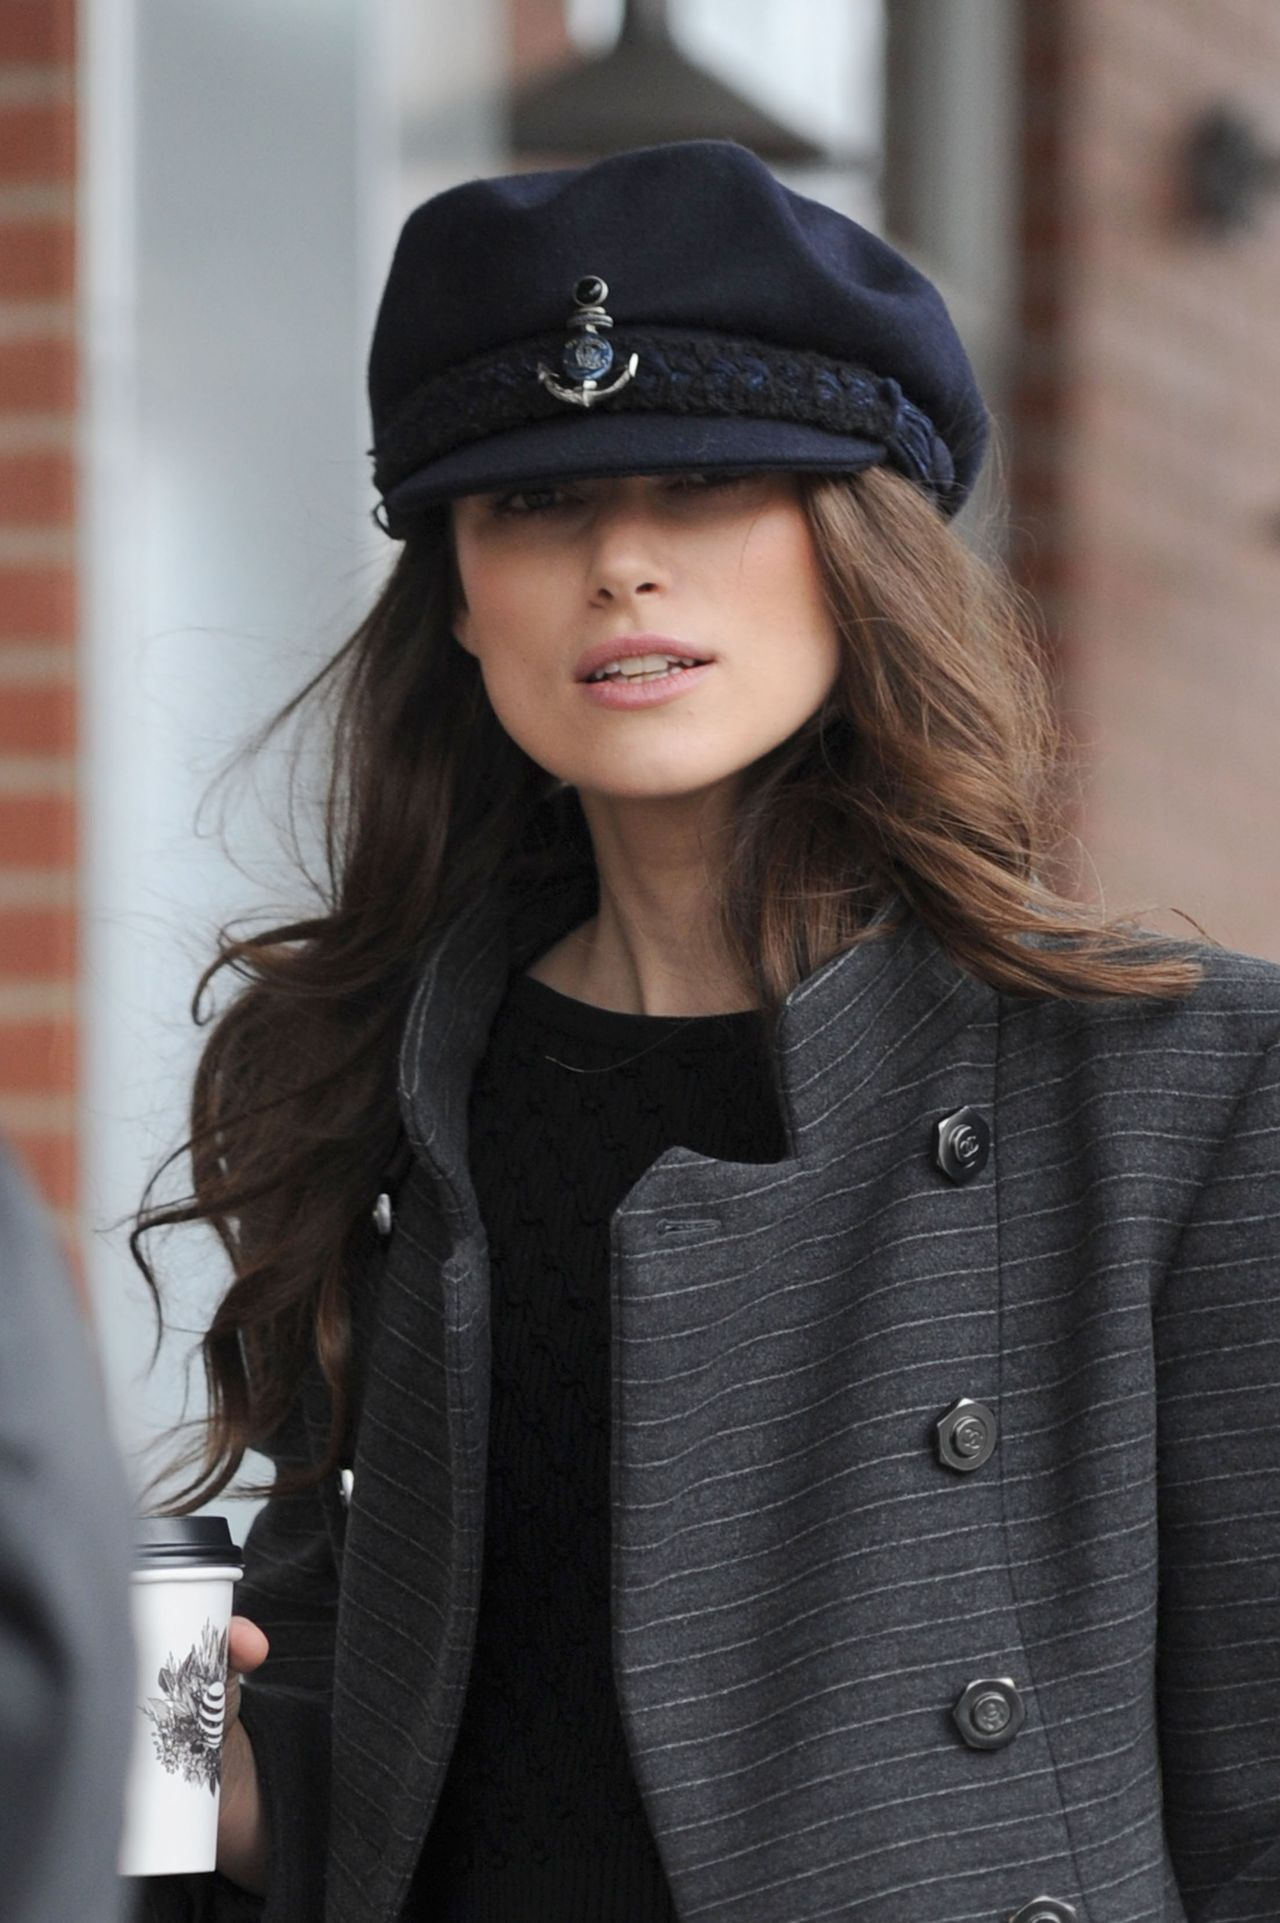 Kiera Knightly grabs a morning coffee wearing a Sailor's hat at Sundance